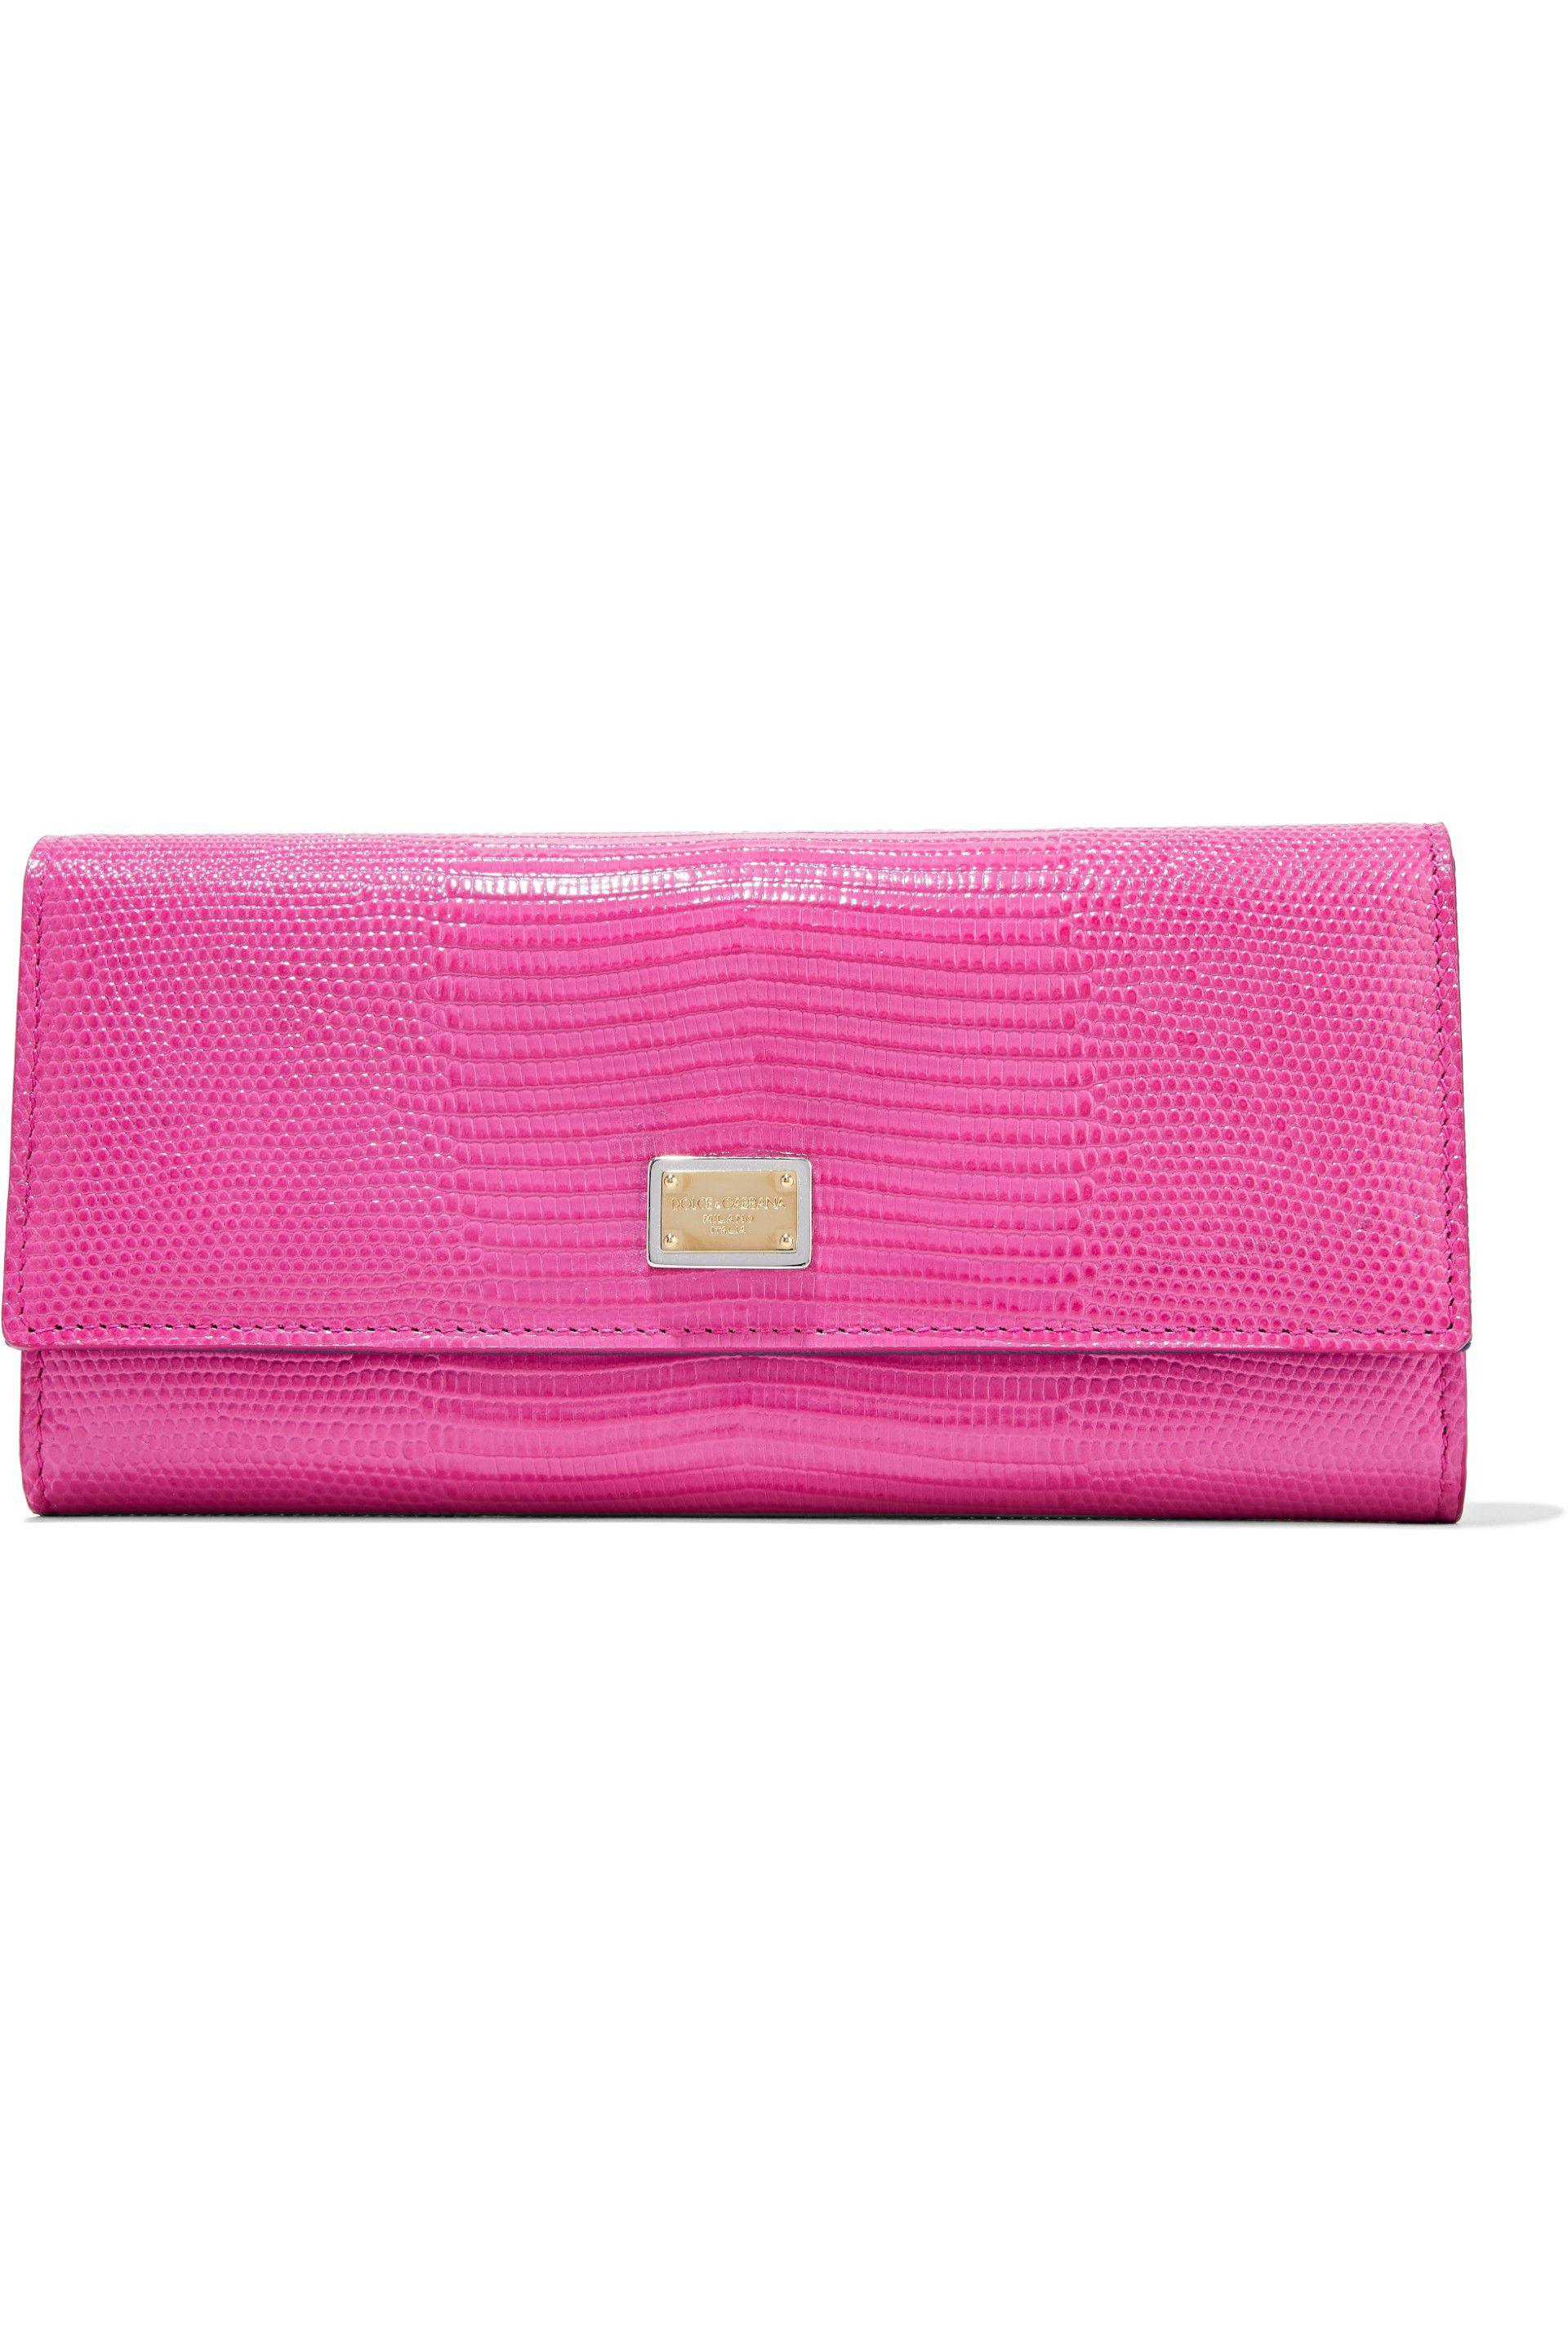 47b6160e37d Lyst - Dolce & Gabbana Lizard-effect Leather Continental Wallet in Pink